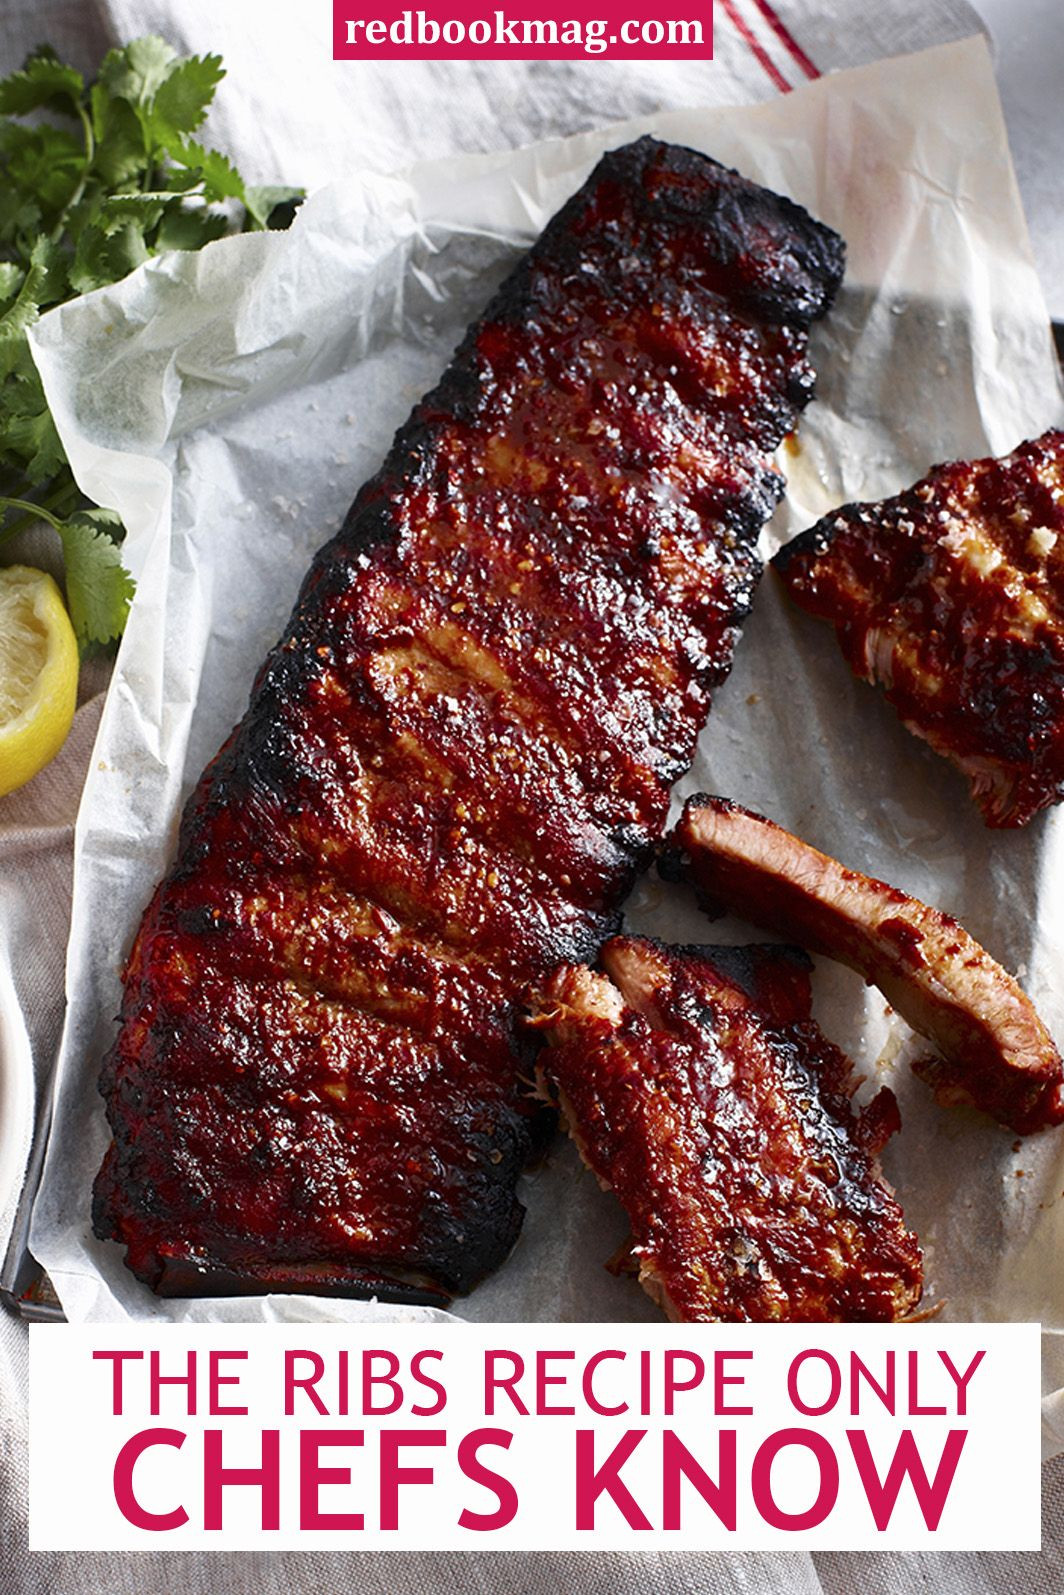 Pork Loin Back Ribs Oven  The Ribs Recipe ly Chefs Knew Until Now